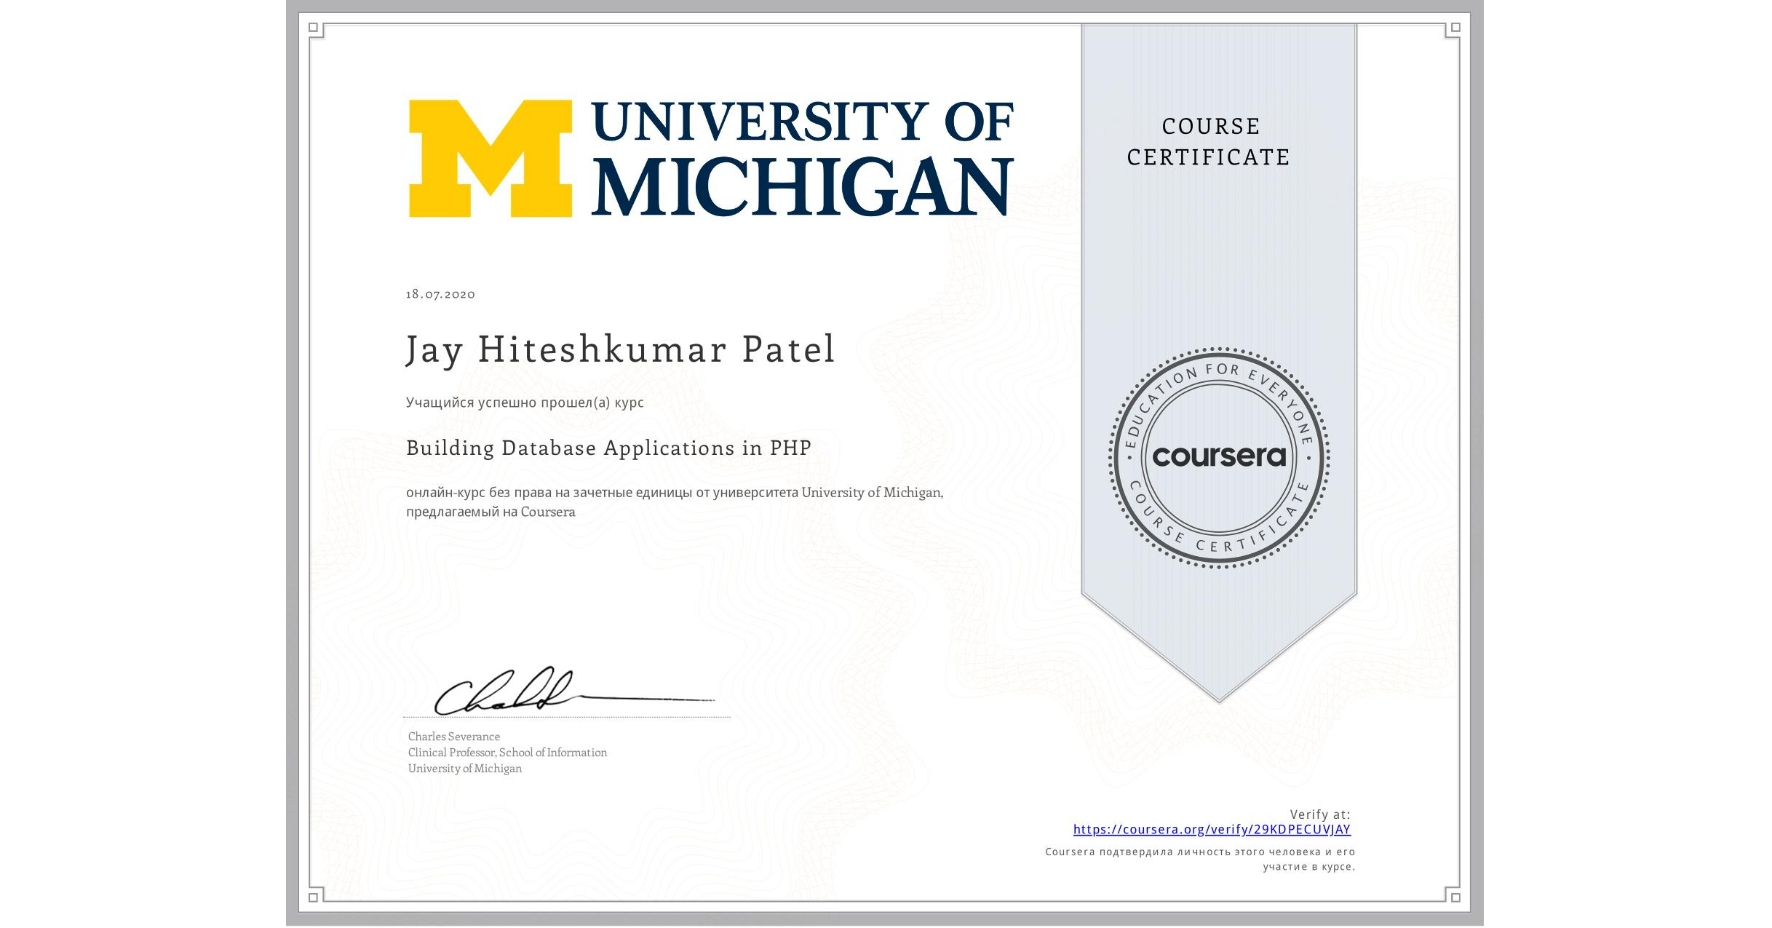 View certificate for Jay Hiteshkumar Patel, Building Database Applications in PHP, an online non-credit course authorized by University of Michigan and offered through Coursera